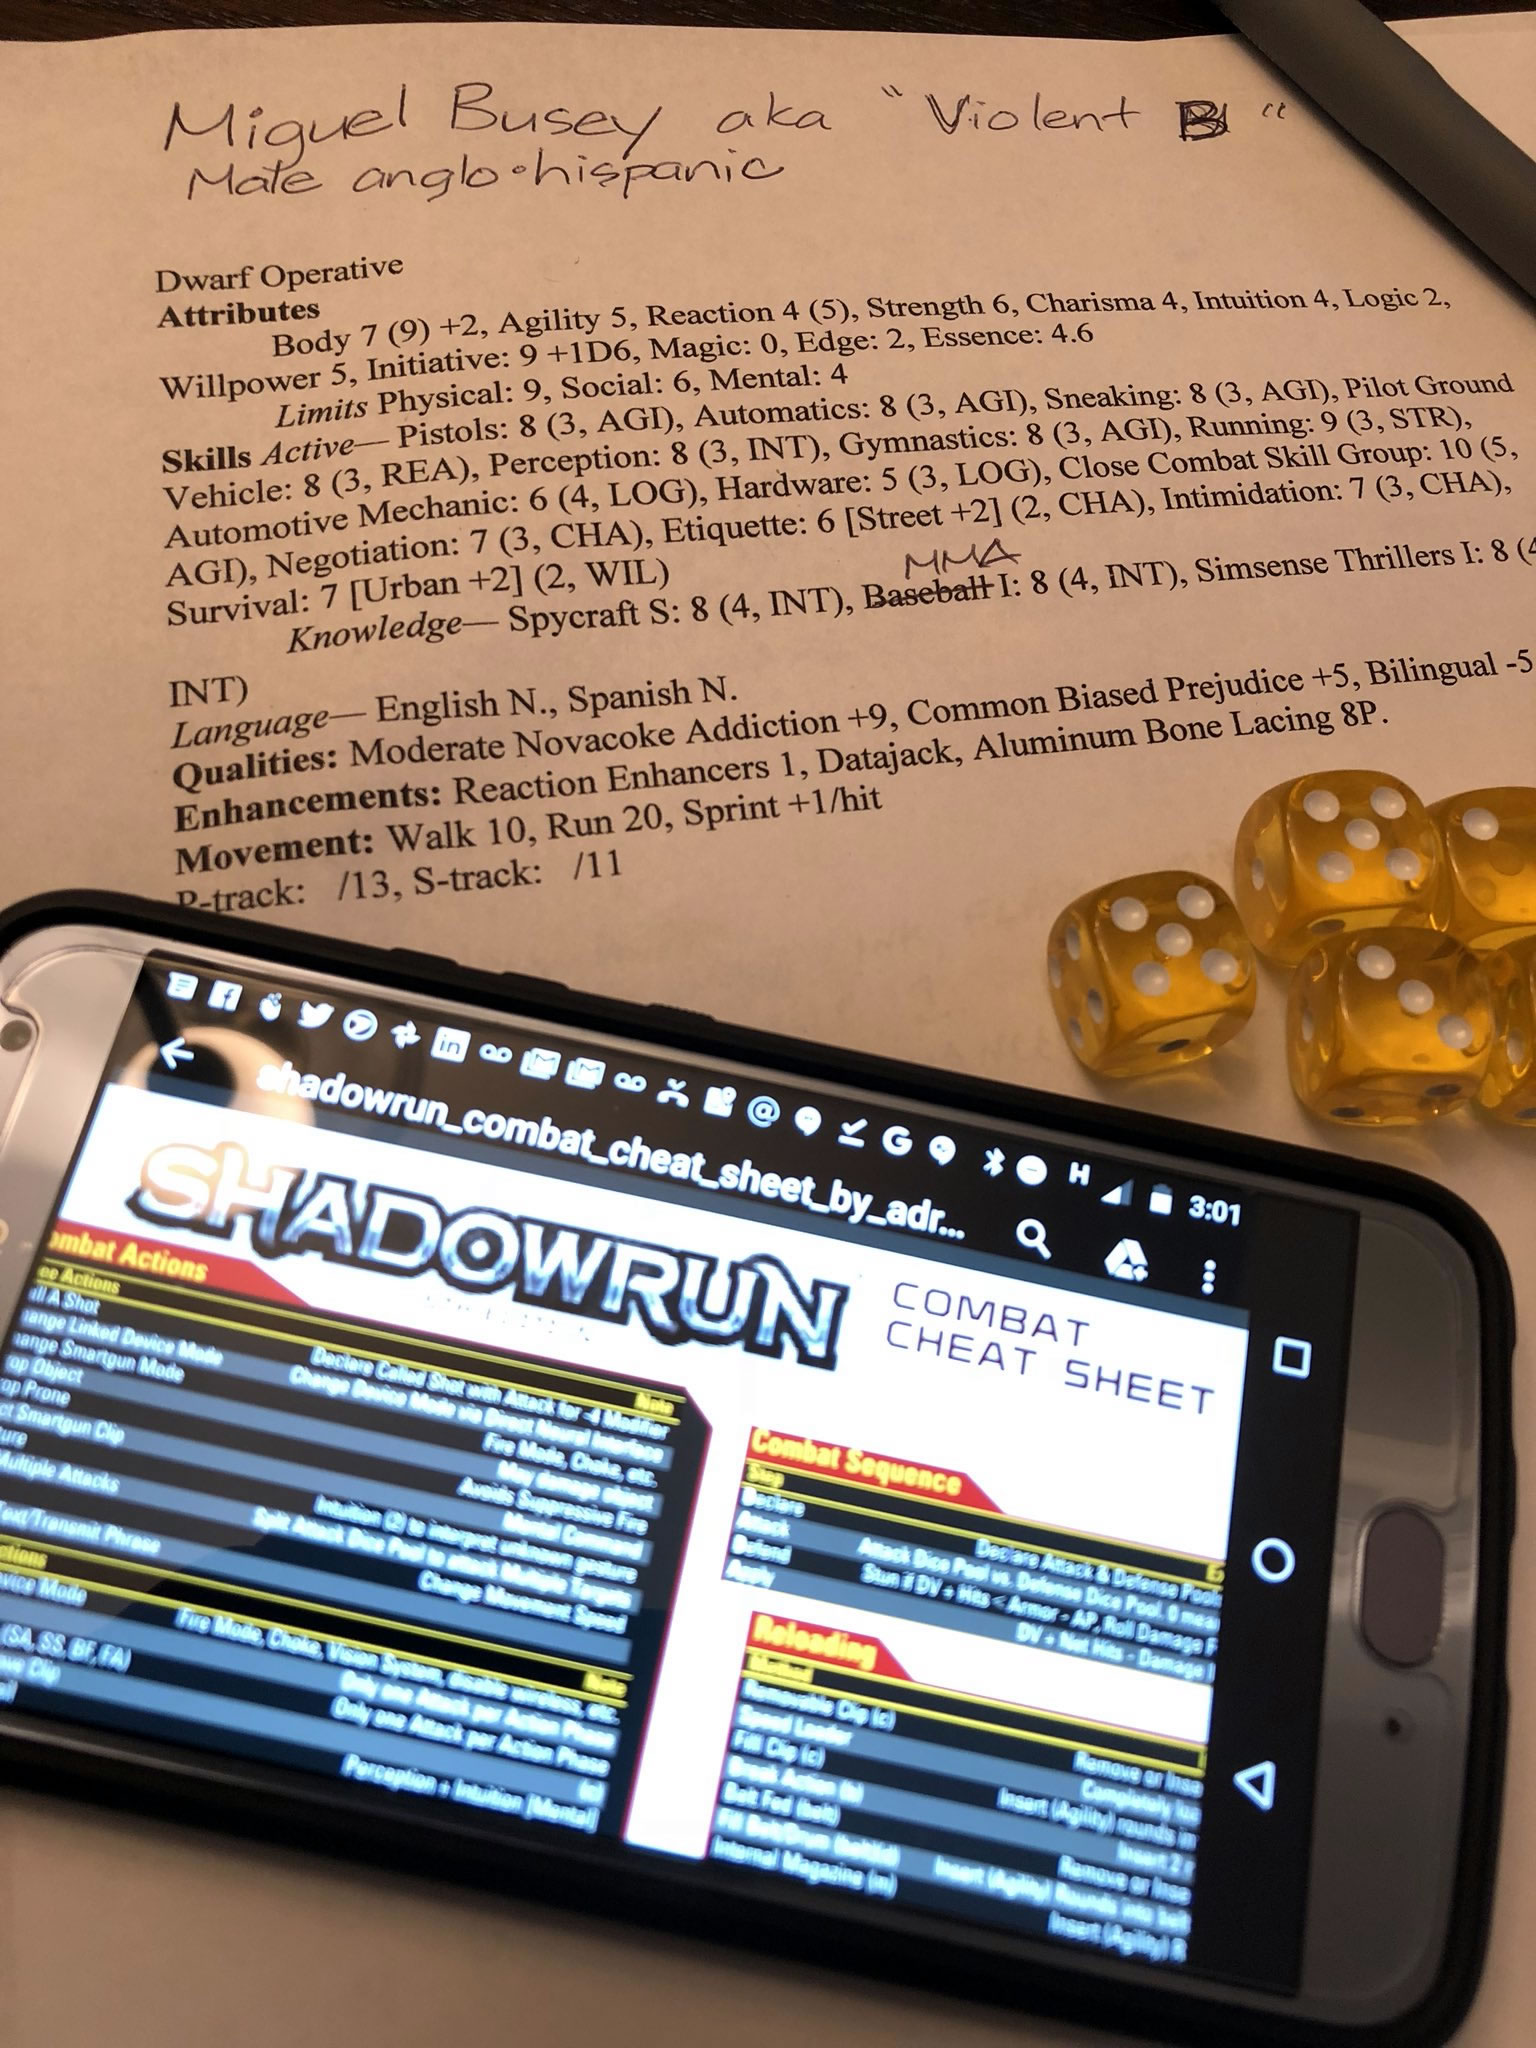 Photo: A Shadowrun still life -- character sheet for a dwarf operative with a novacoke addiction and a penchant for brawling, a handful of yellow six-sided dice, and a Motorola X4 smartphone displaying a Shadowrun cheat sheet.